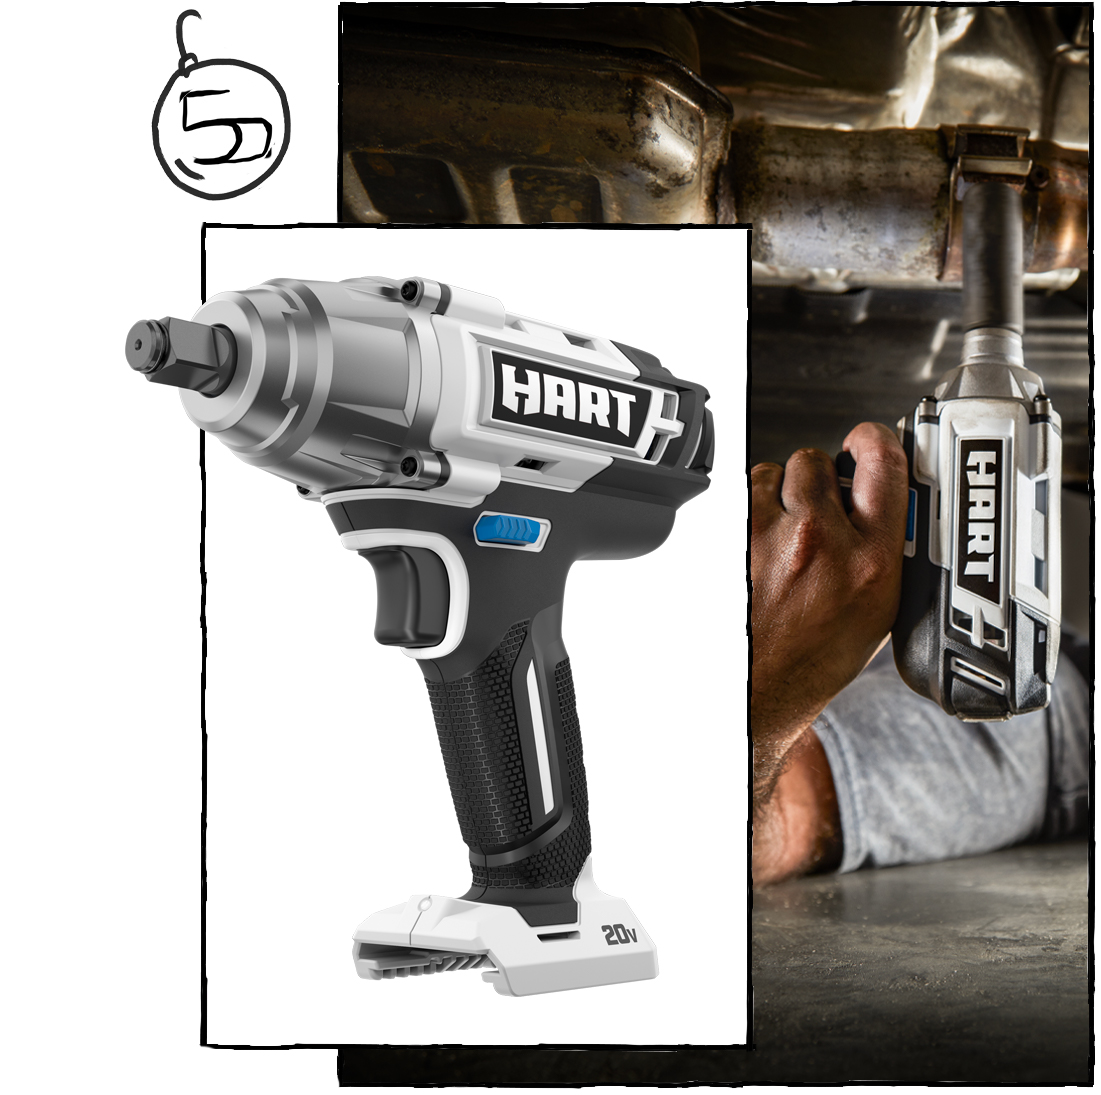 "All Mechanicals and Mechanics Swoon for the 1/2"" Impact Wrench ($119)"